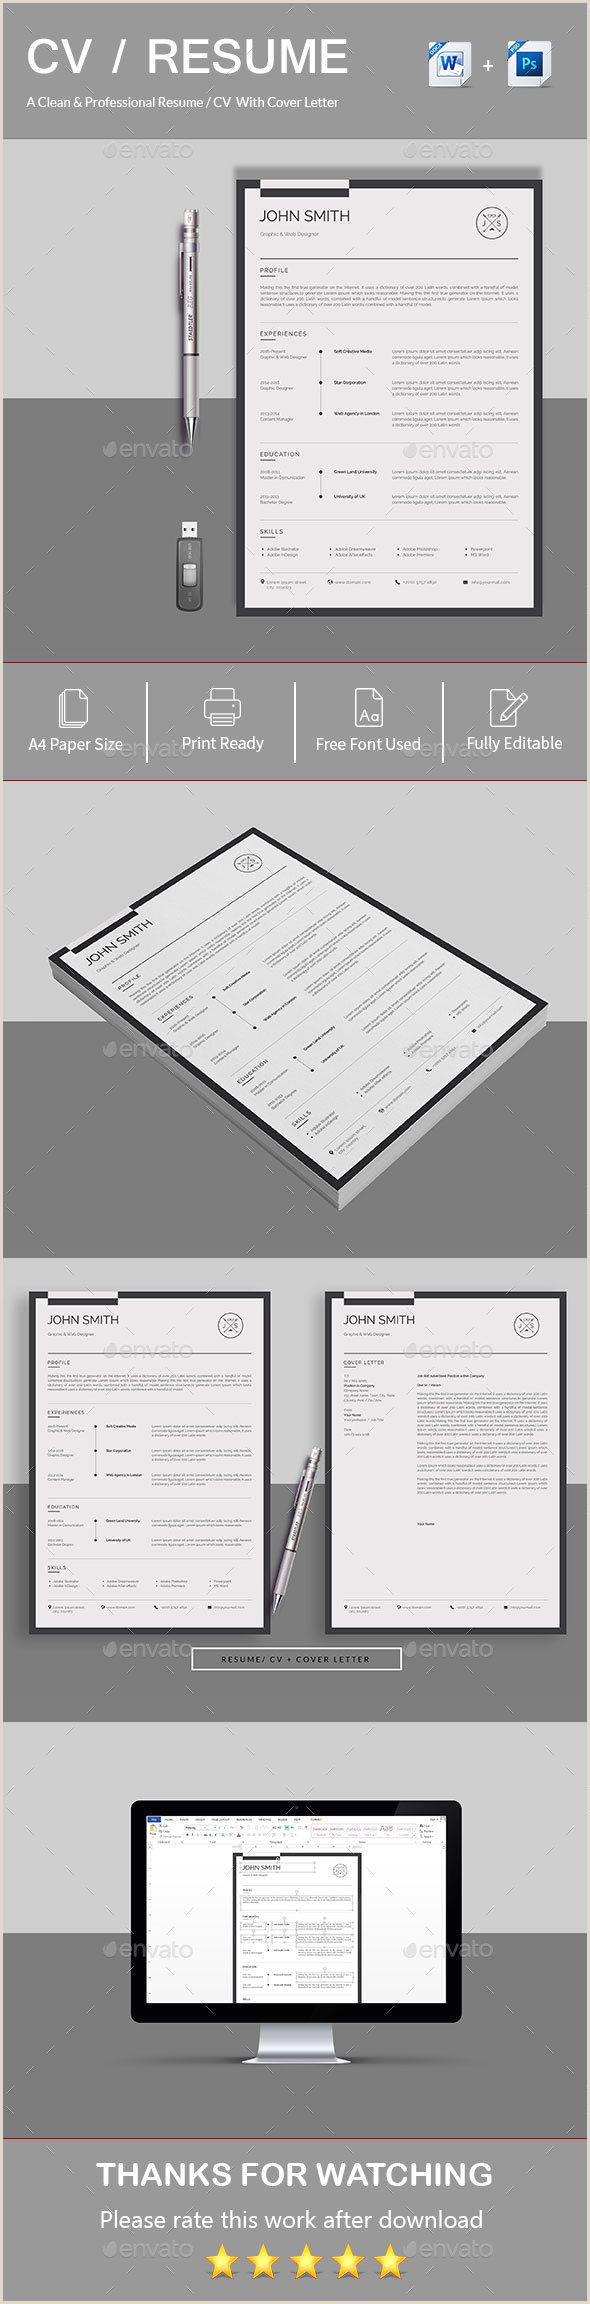 Cv format for Cleaning Job Eemple De Cv Nouveau Luxury Modele Cv Resume Jobs Sample